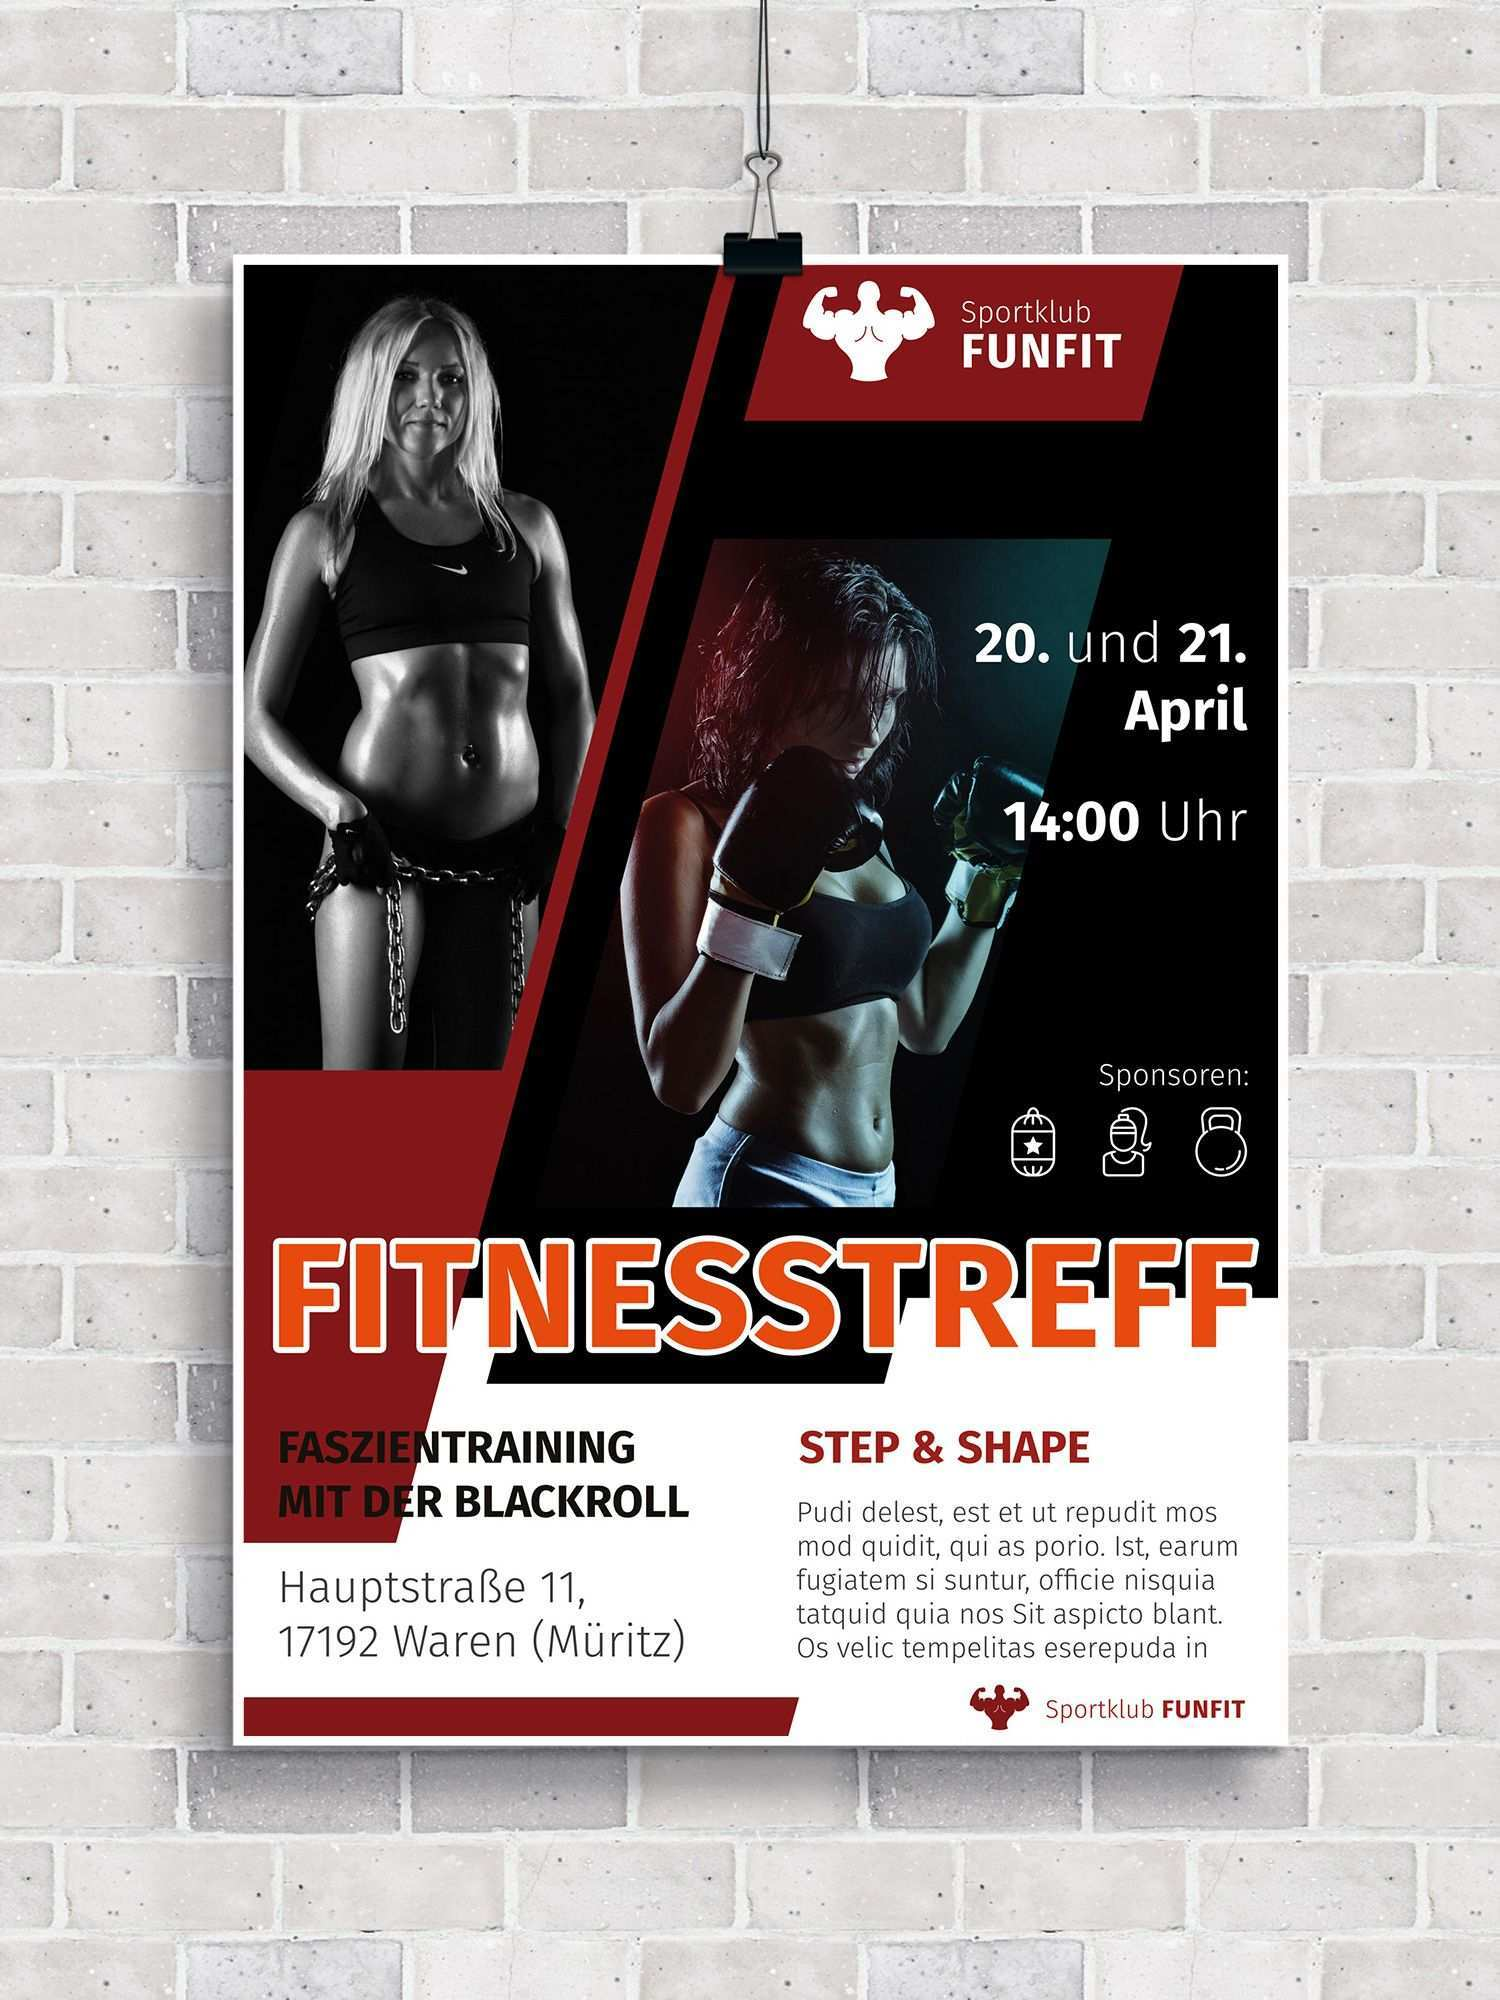 Flyer Vorlagen Fur Fitness Sport Und Fitnessstudios Zum Download Fitnessstudio Fitness Flyer Vorlage